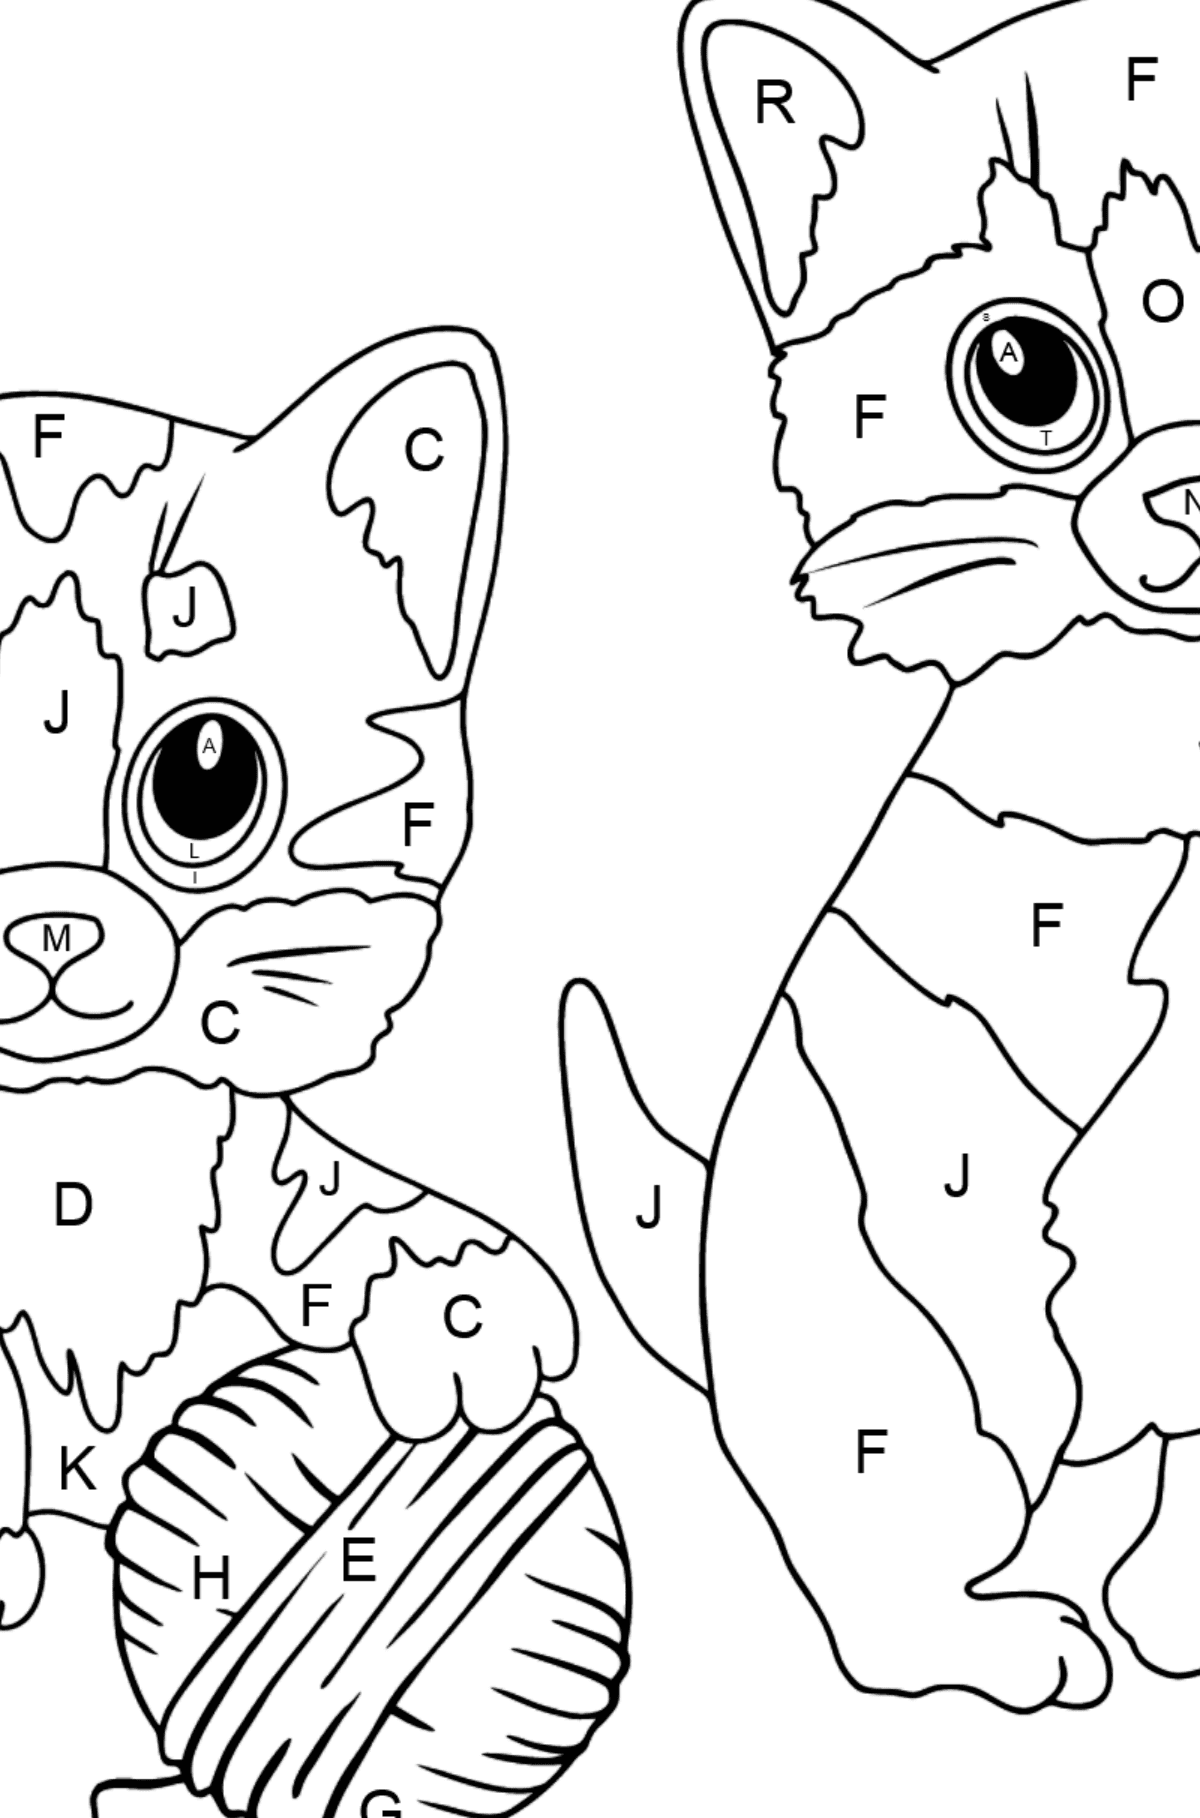 Coloring Page - Kitty Cat - Coloring by Letters for Kids